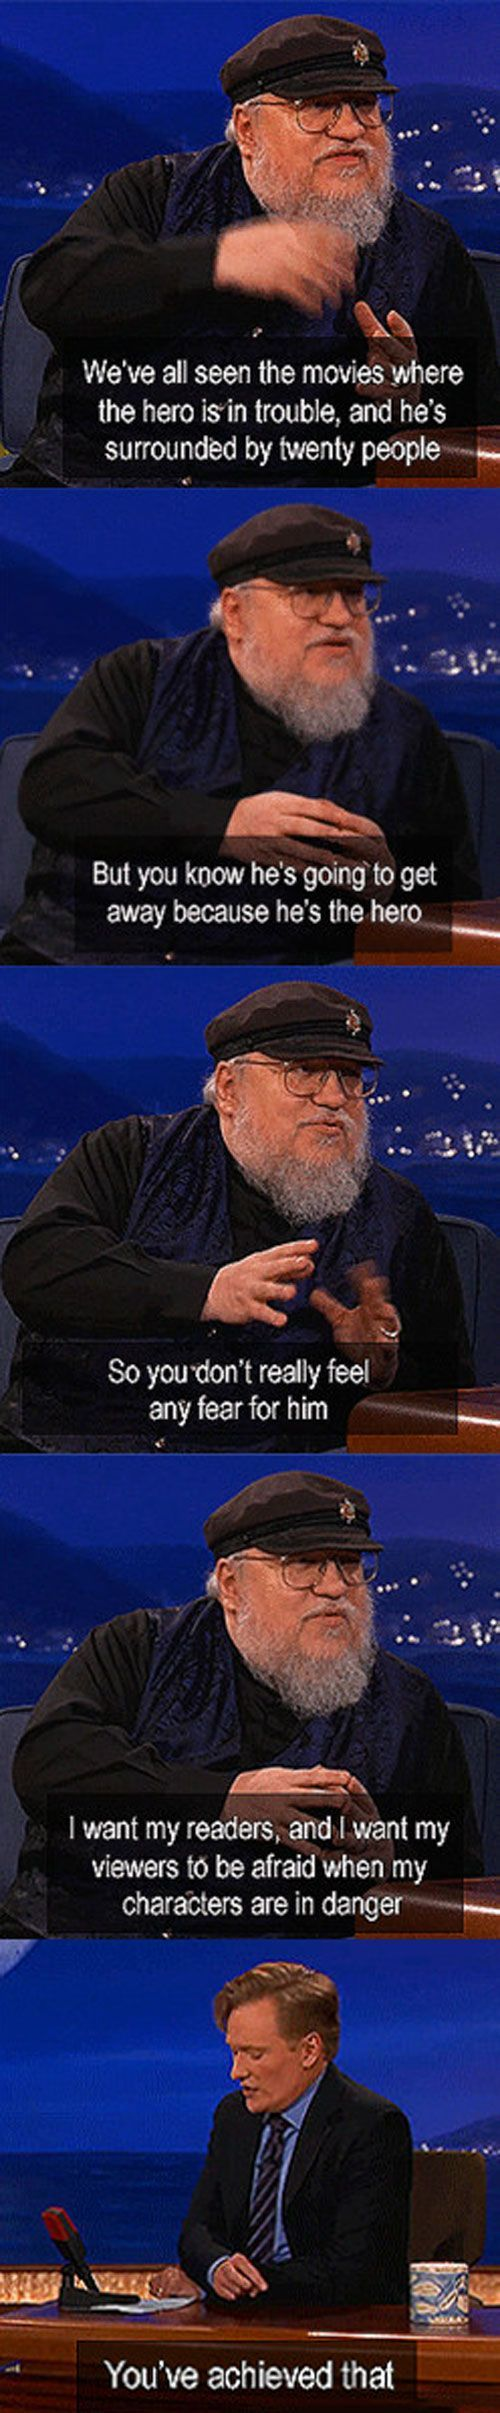 GAME OF THRONES: you've achieved that